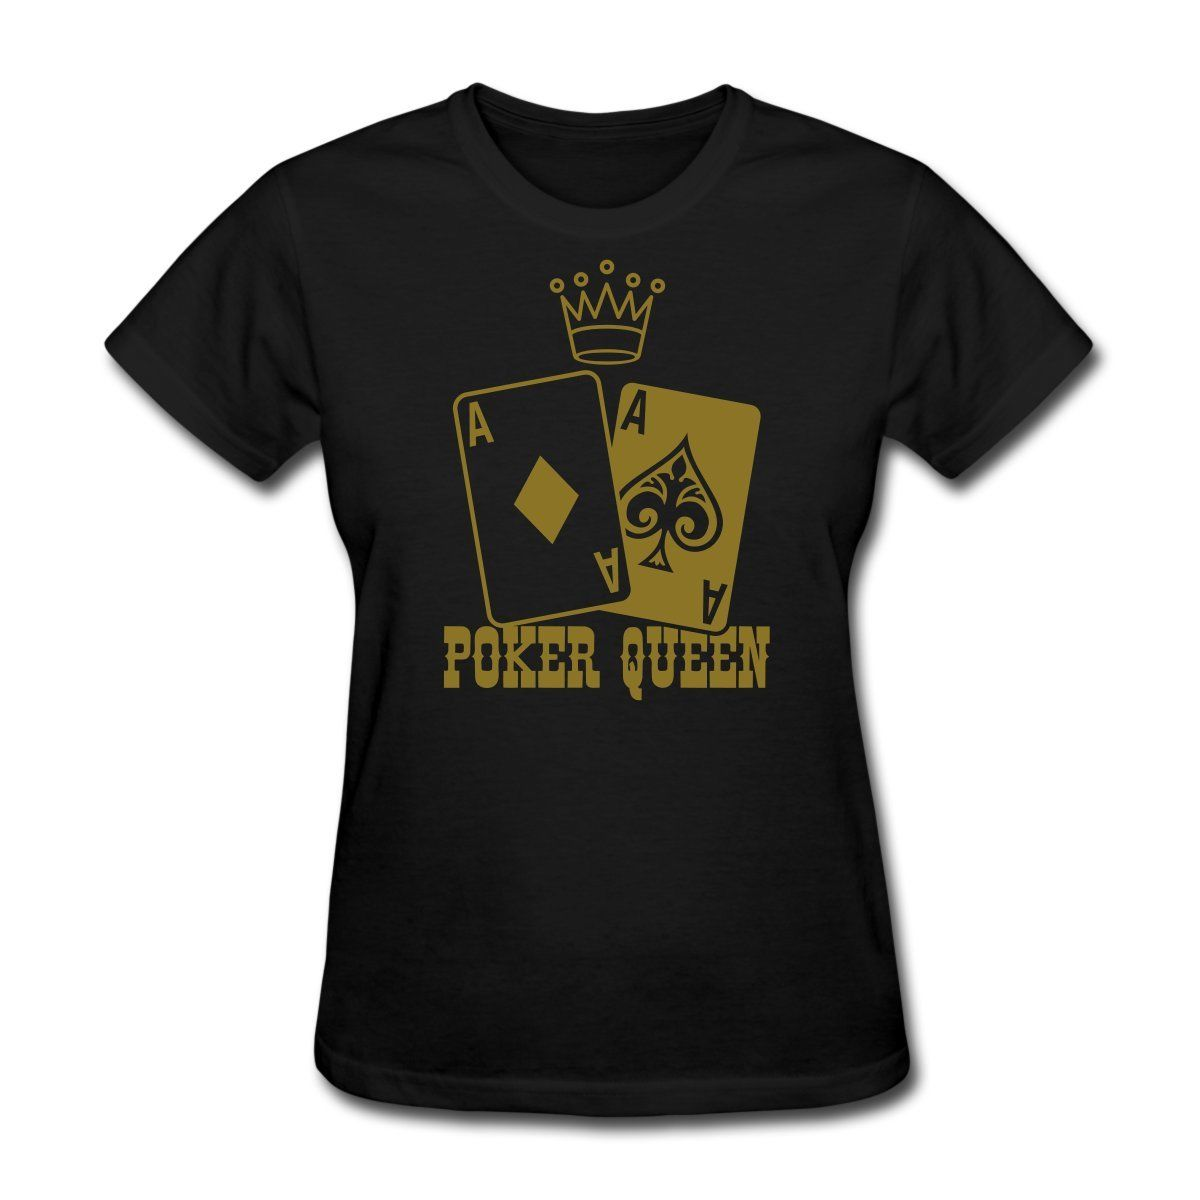 Poker - Poker Queen Womens T-Shirt Hot Sell Women Clothing Tops Tee Brand Korean Funny Hiphop Printed Funny T Shirts Women